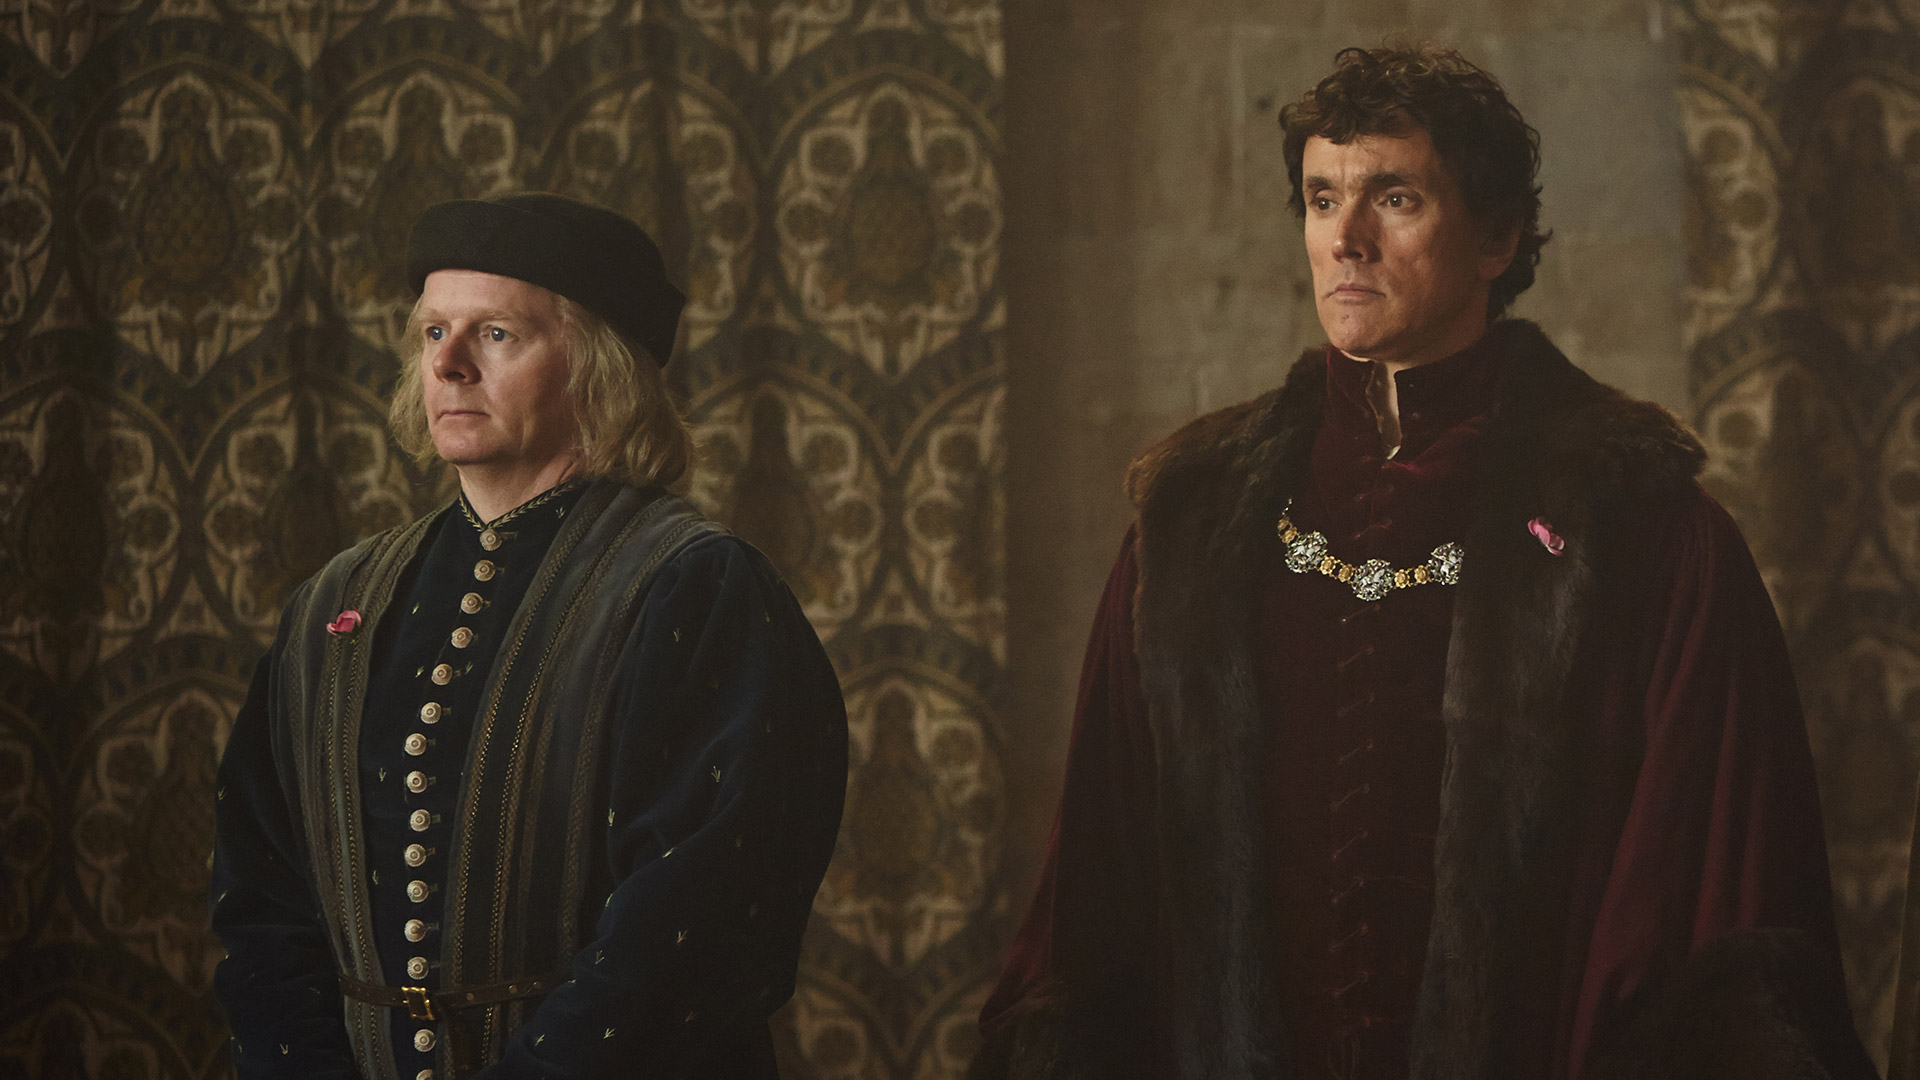 The Hollow Crown: The Wars of the Roses HENRY VI (PART I). Jason Watkins (as Duke of Suffolk) and Ben Miles (as Duke of Somerset). Photographer: Robert Viglasky © 2015 Carnival Film & Television Ltd